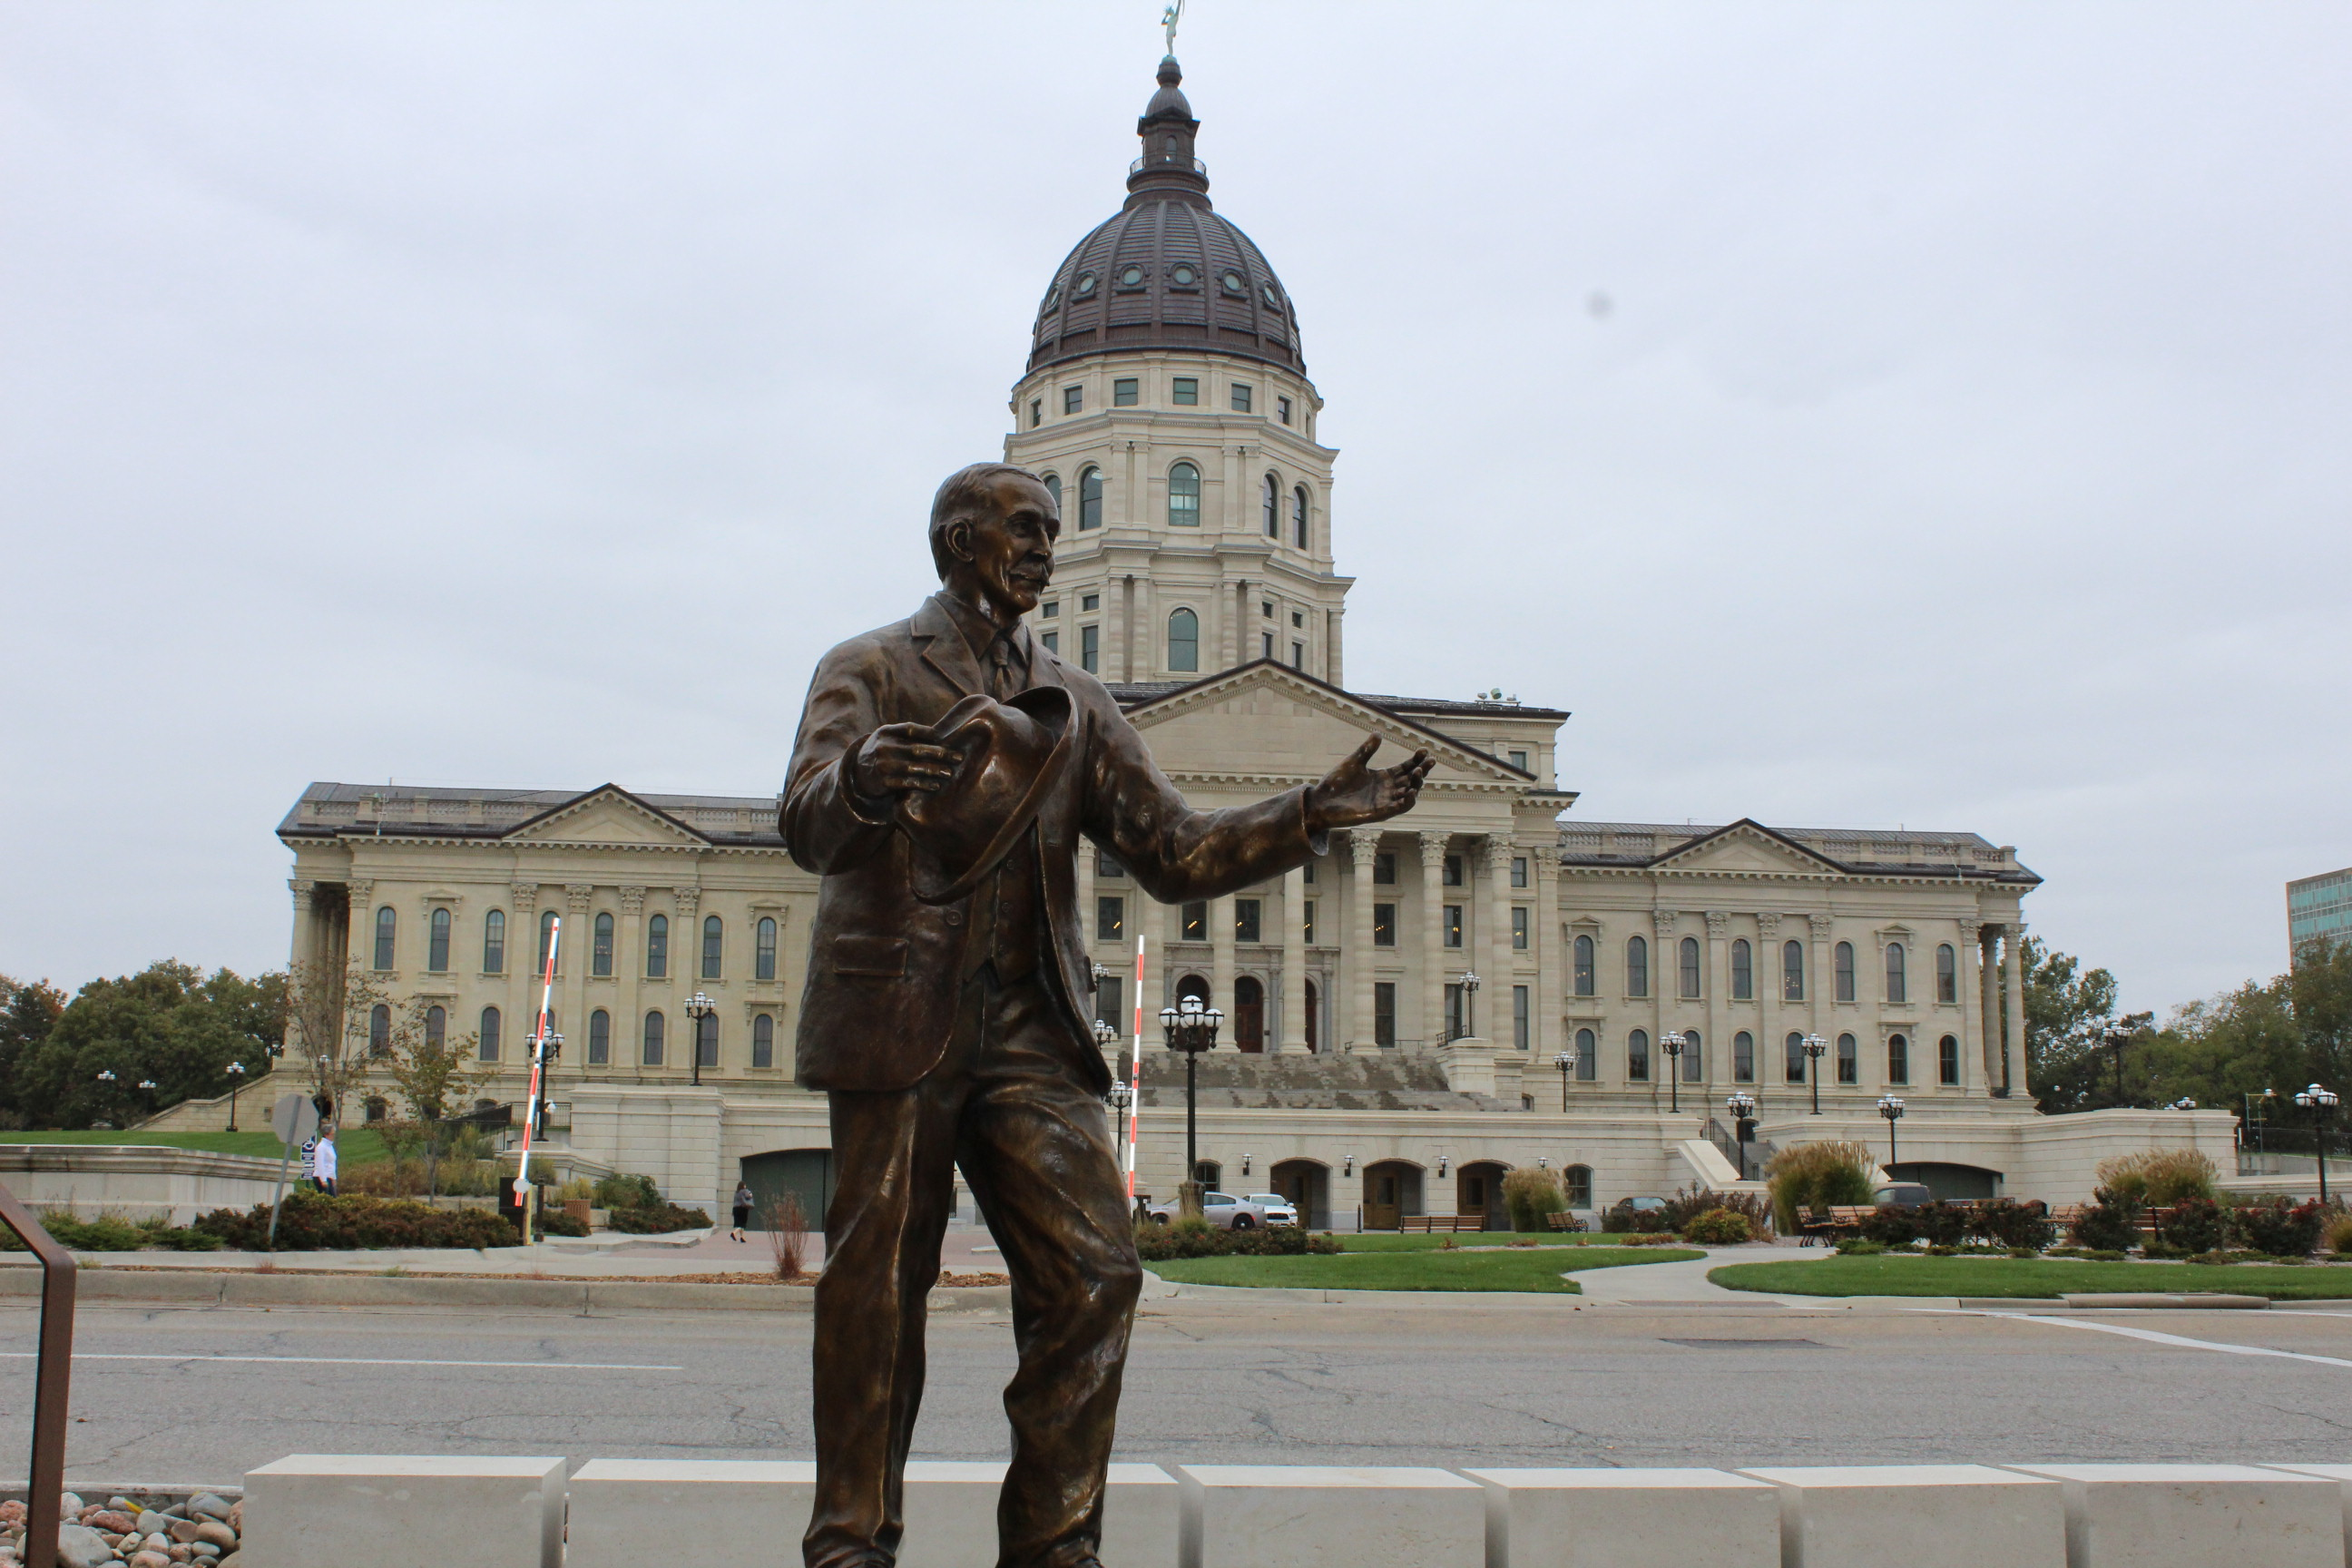 Statue of Dr. Samuel Crumbine, across the street from the Kansas Statehouse, in Topeka.  (Photo by J. Schafer)